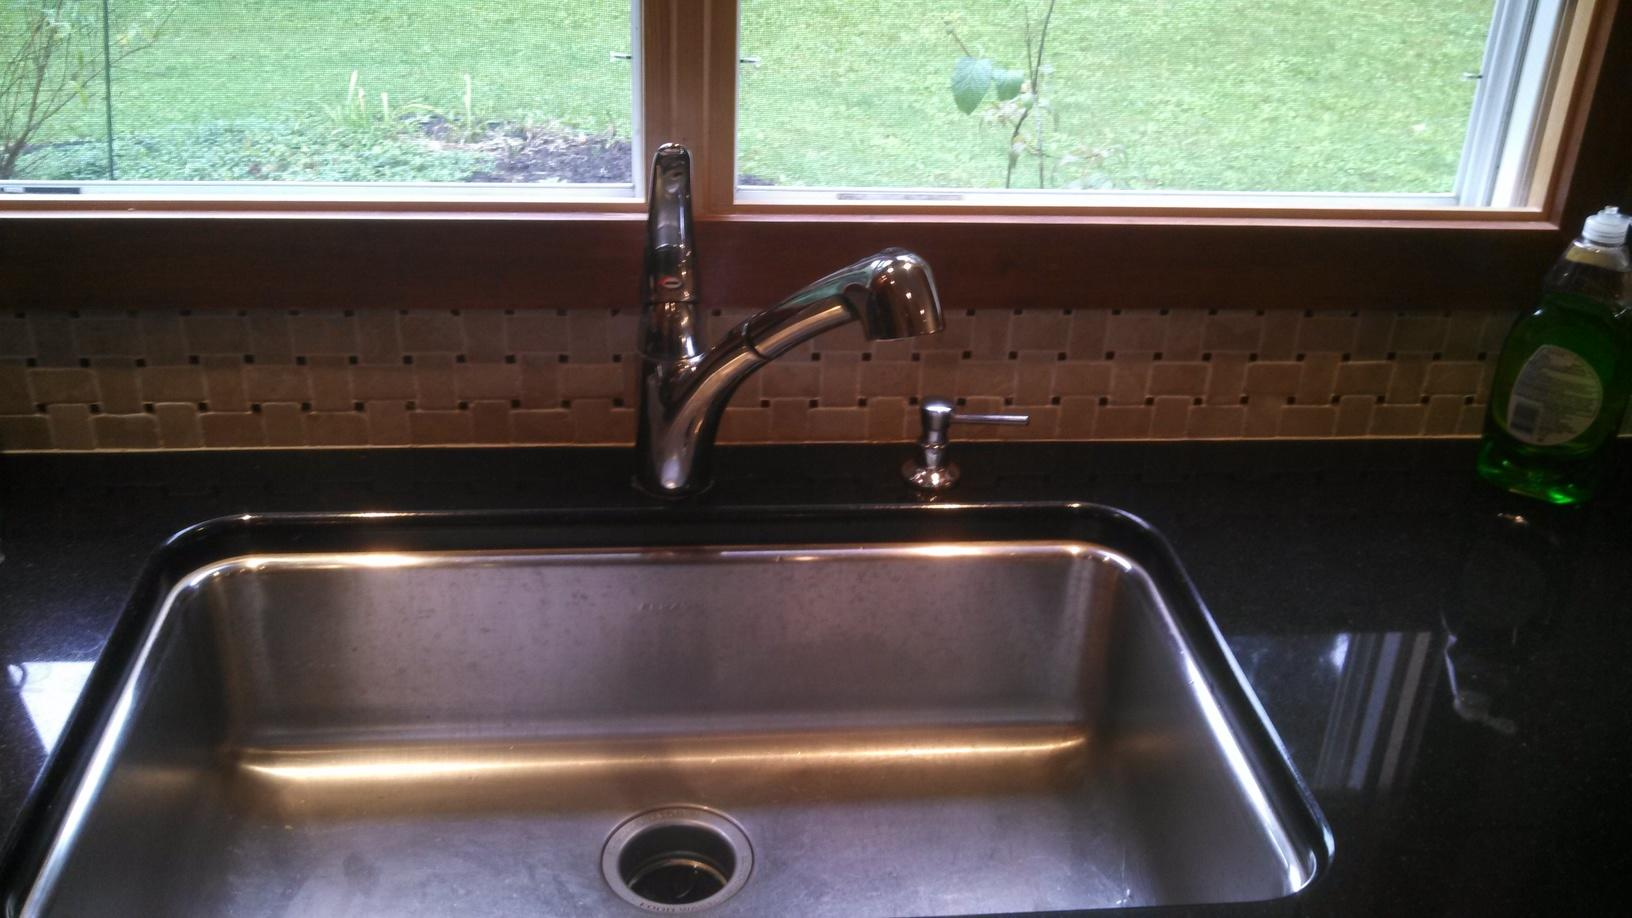 Kitchen Faucet Replacement in Ithaca, NY - Before Photo